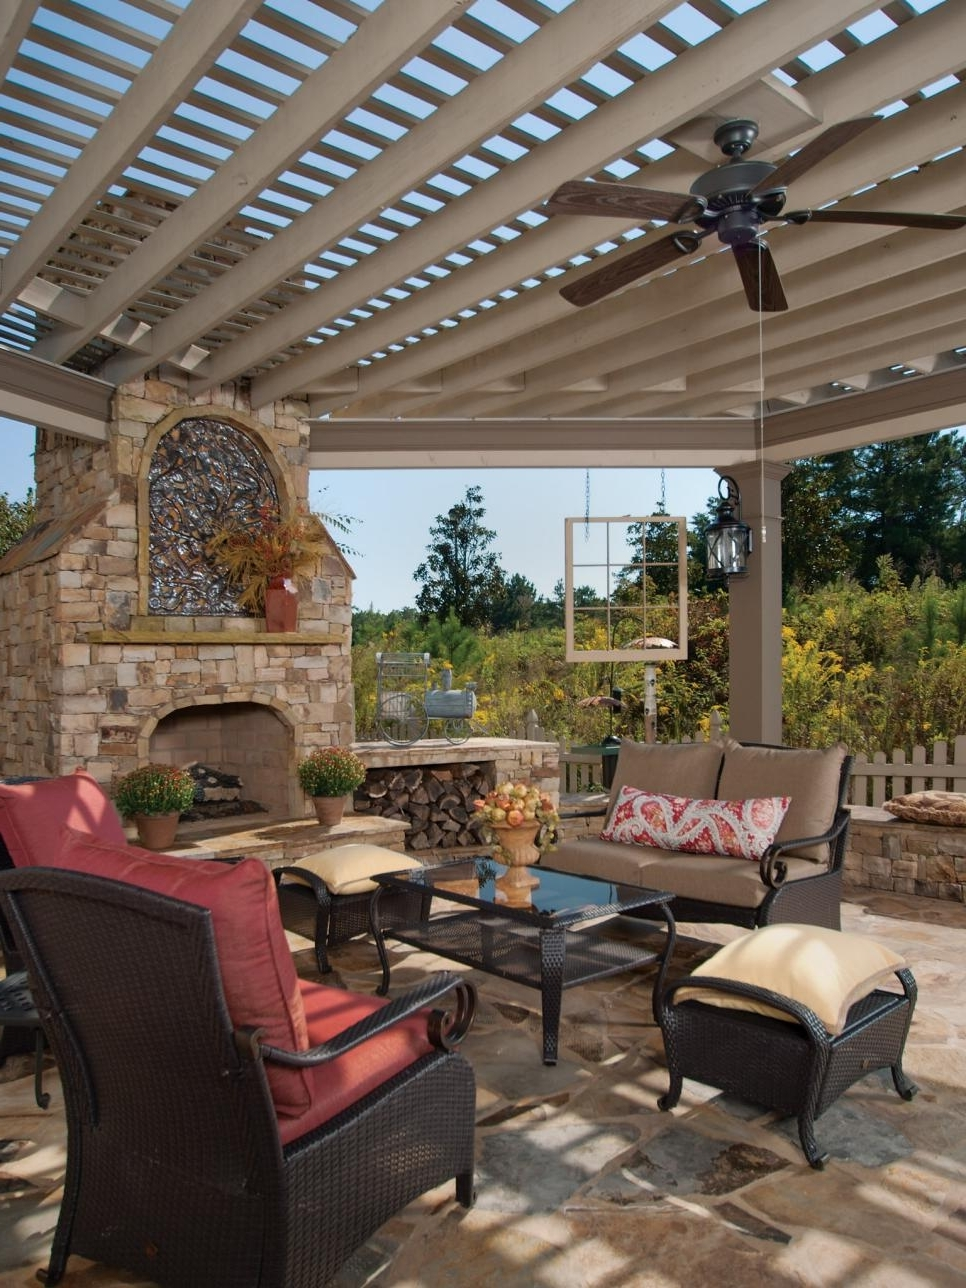 Widely Used Wicker Outdoor Ceiling Fans Intended For Ideas: Enchanting Patio Design With White Pergola Design And (View 20 of 20)